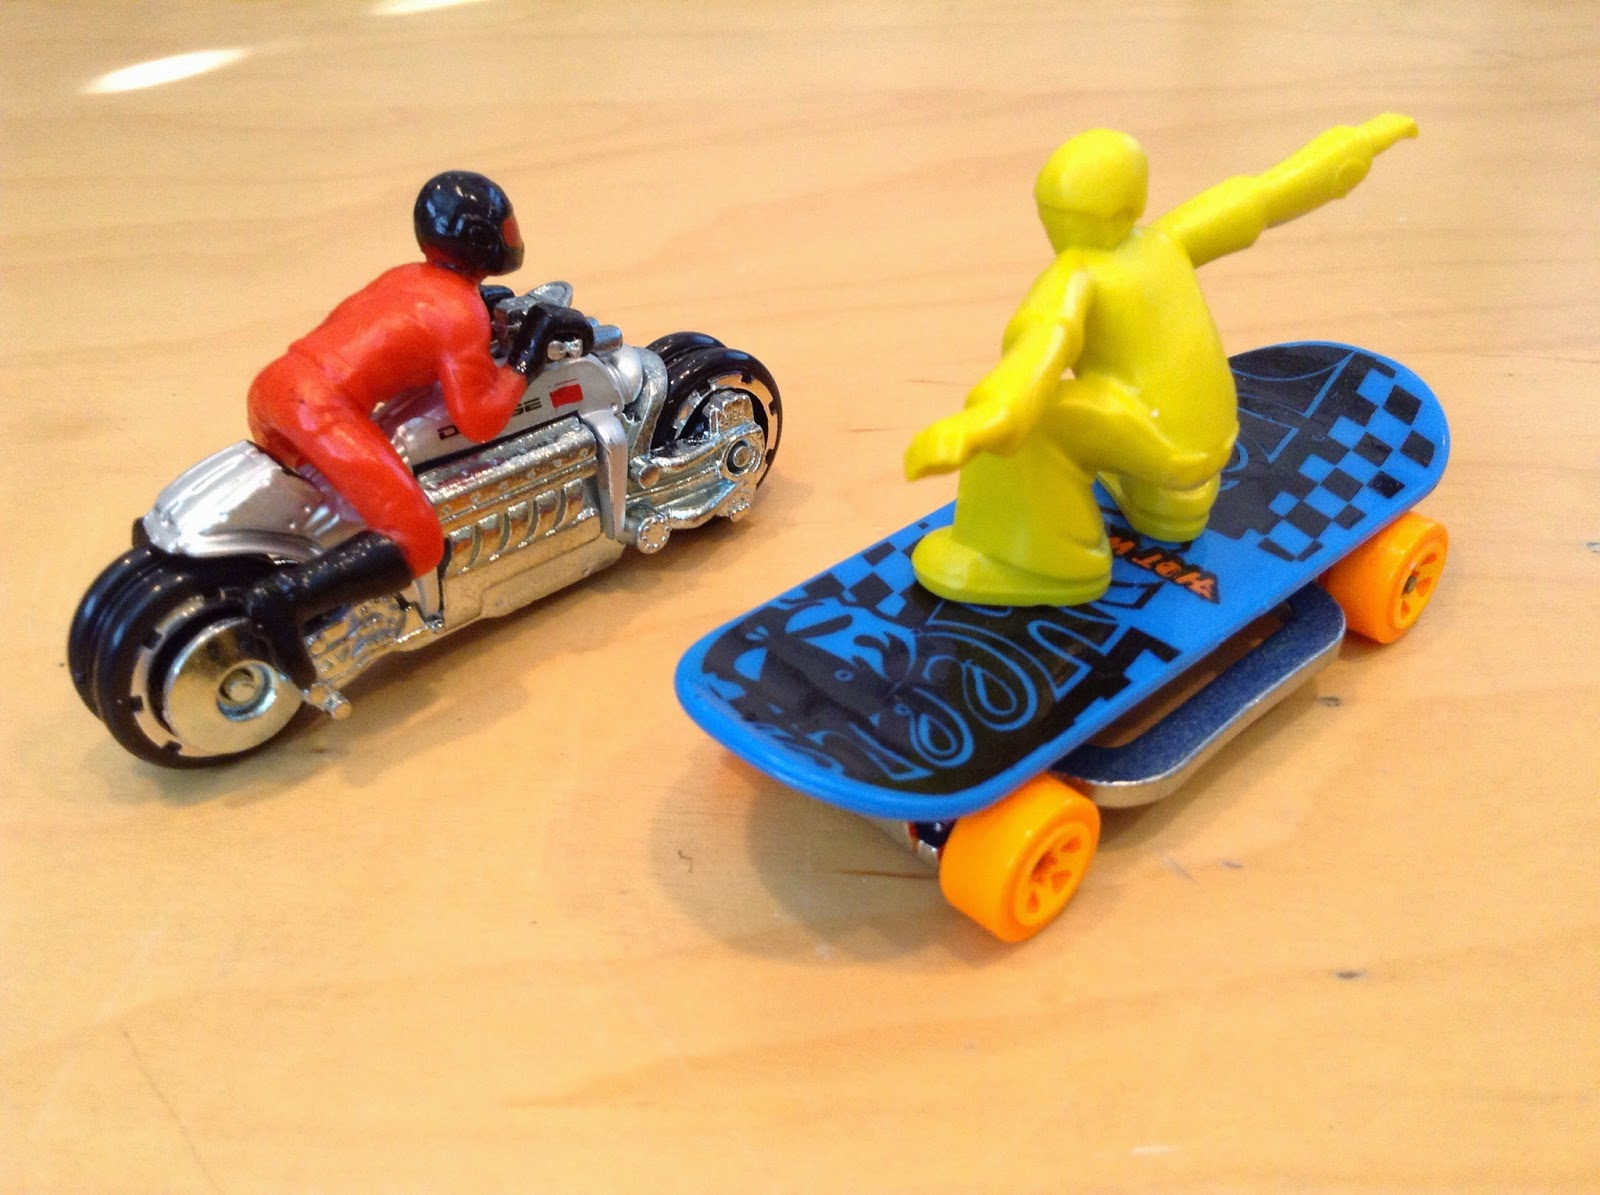 Julian's Hot Wheels Blog: Dodge Tomahawk & Skate Punk